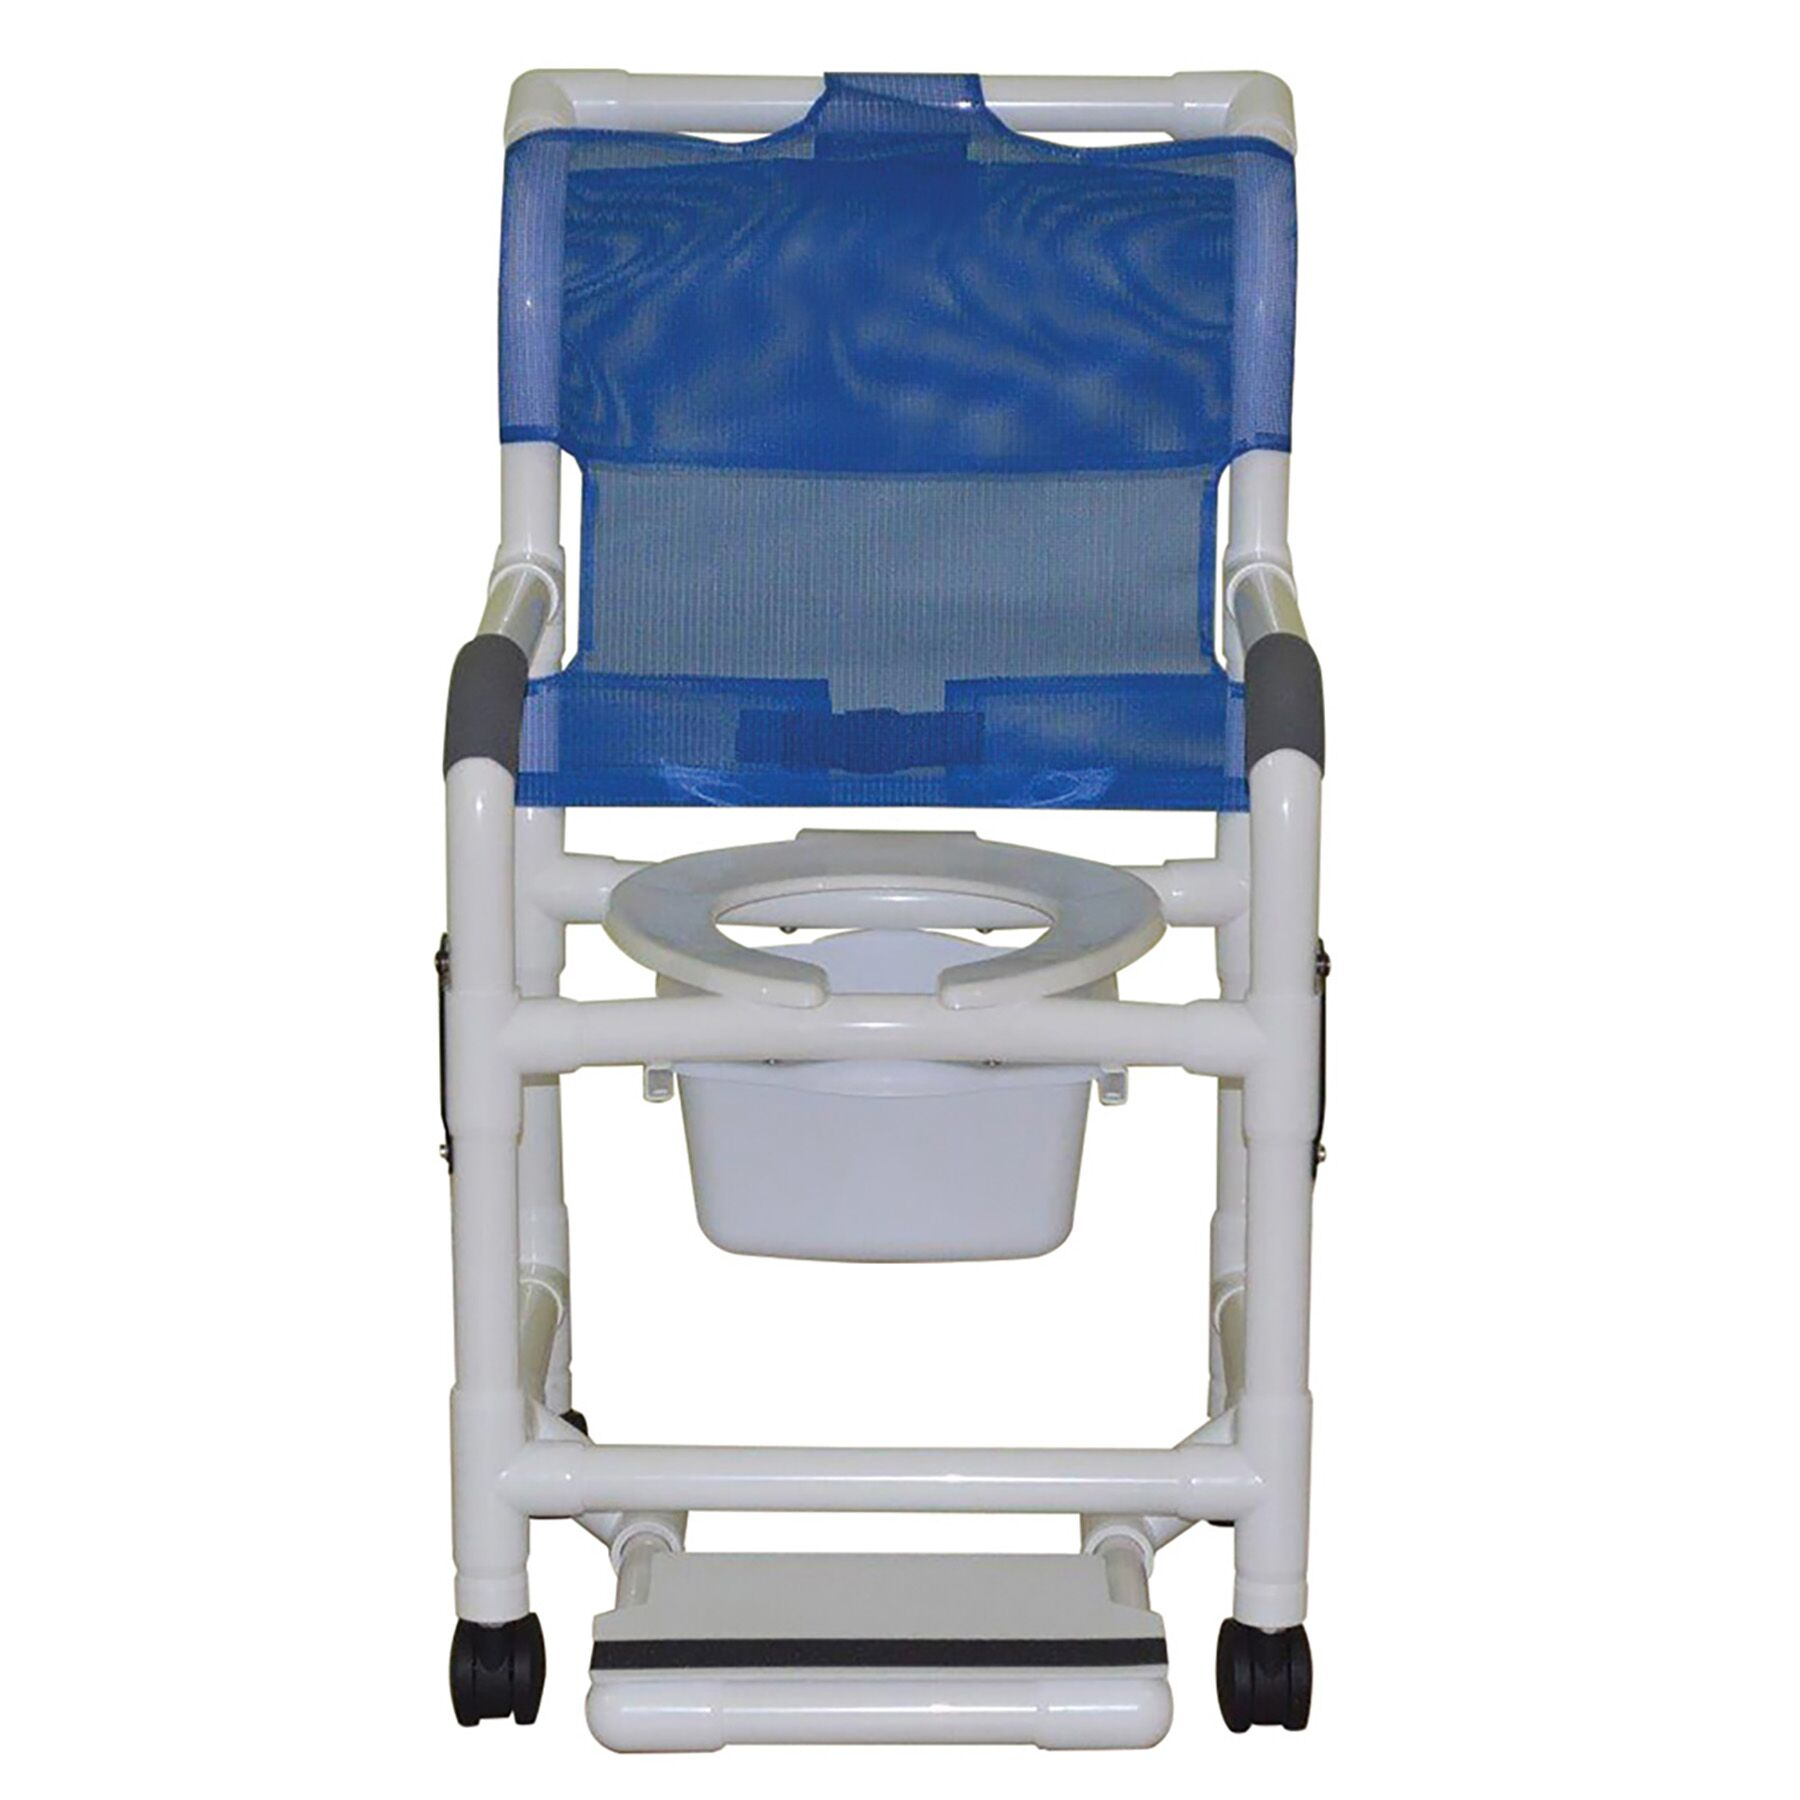 18″ Shower Chair W/ Open Front, Double Drop Arm And Slide Out Footrest